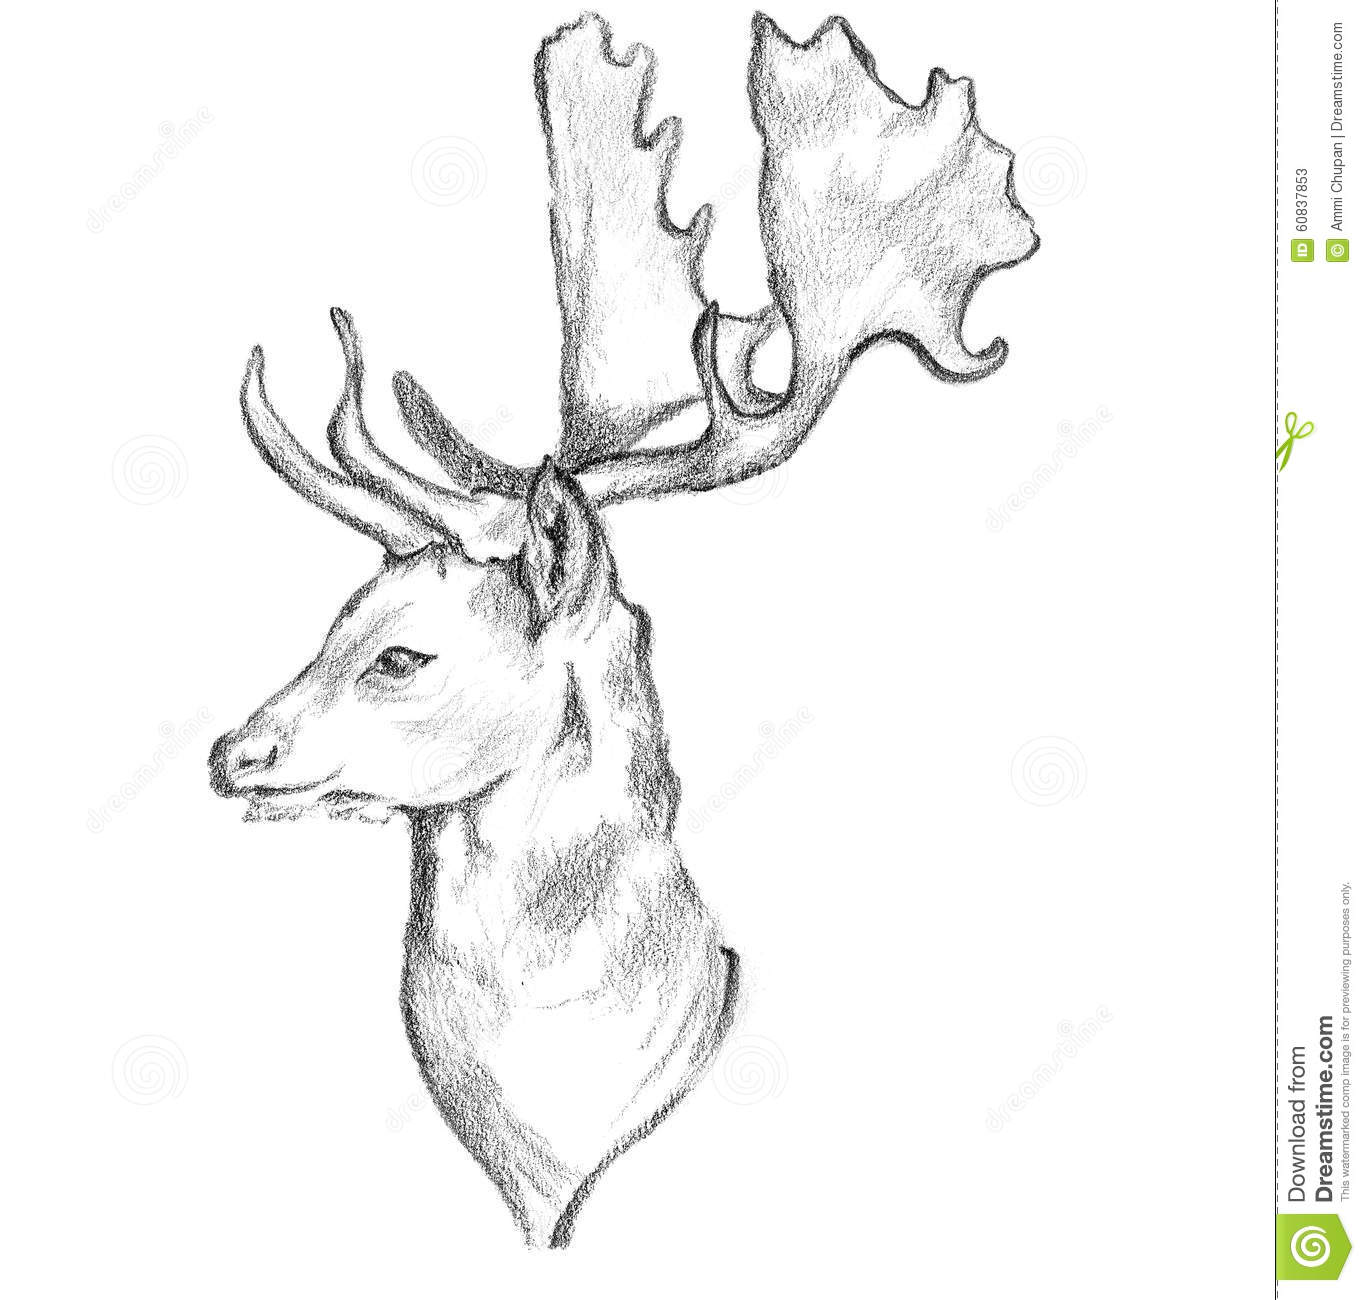 Hand drawn pencil sketch art of deer by face side